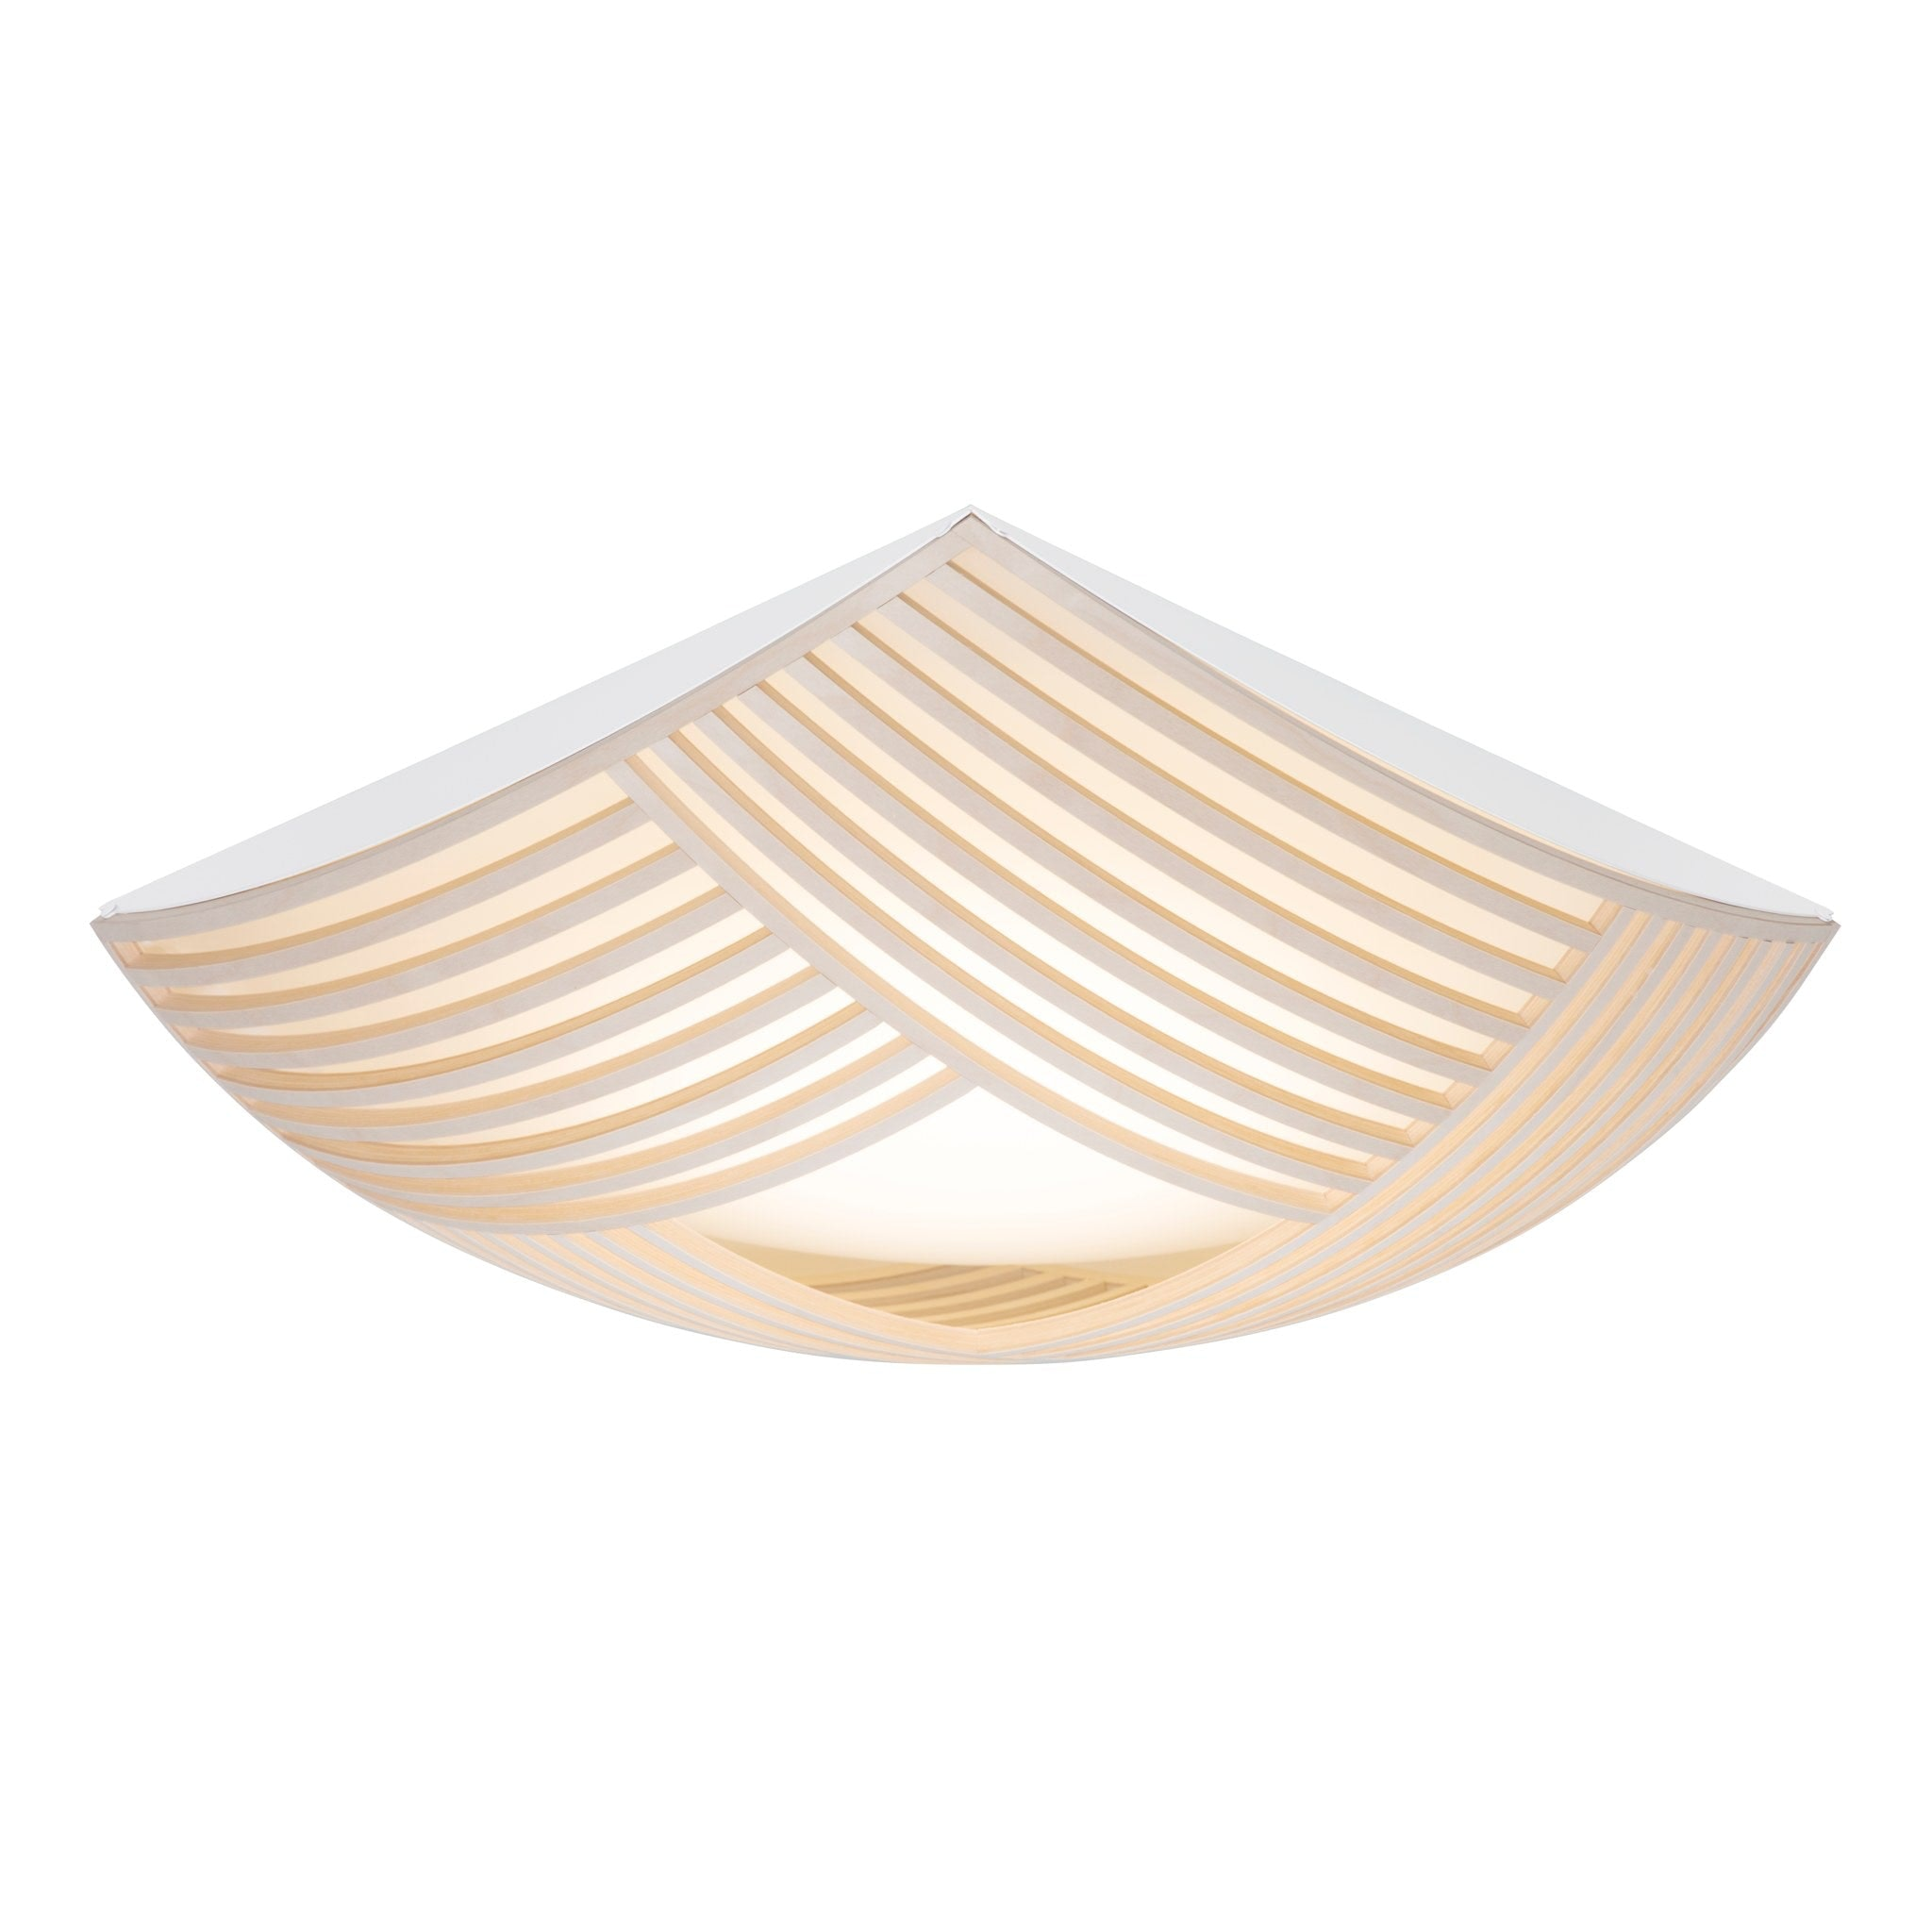 Kuulto 9100 Ceiling Lamp by Secto Design